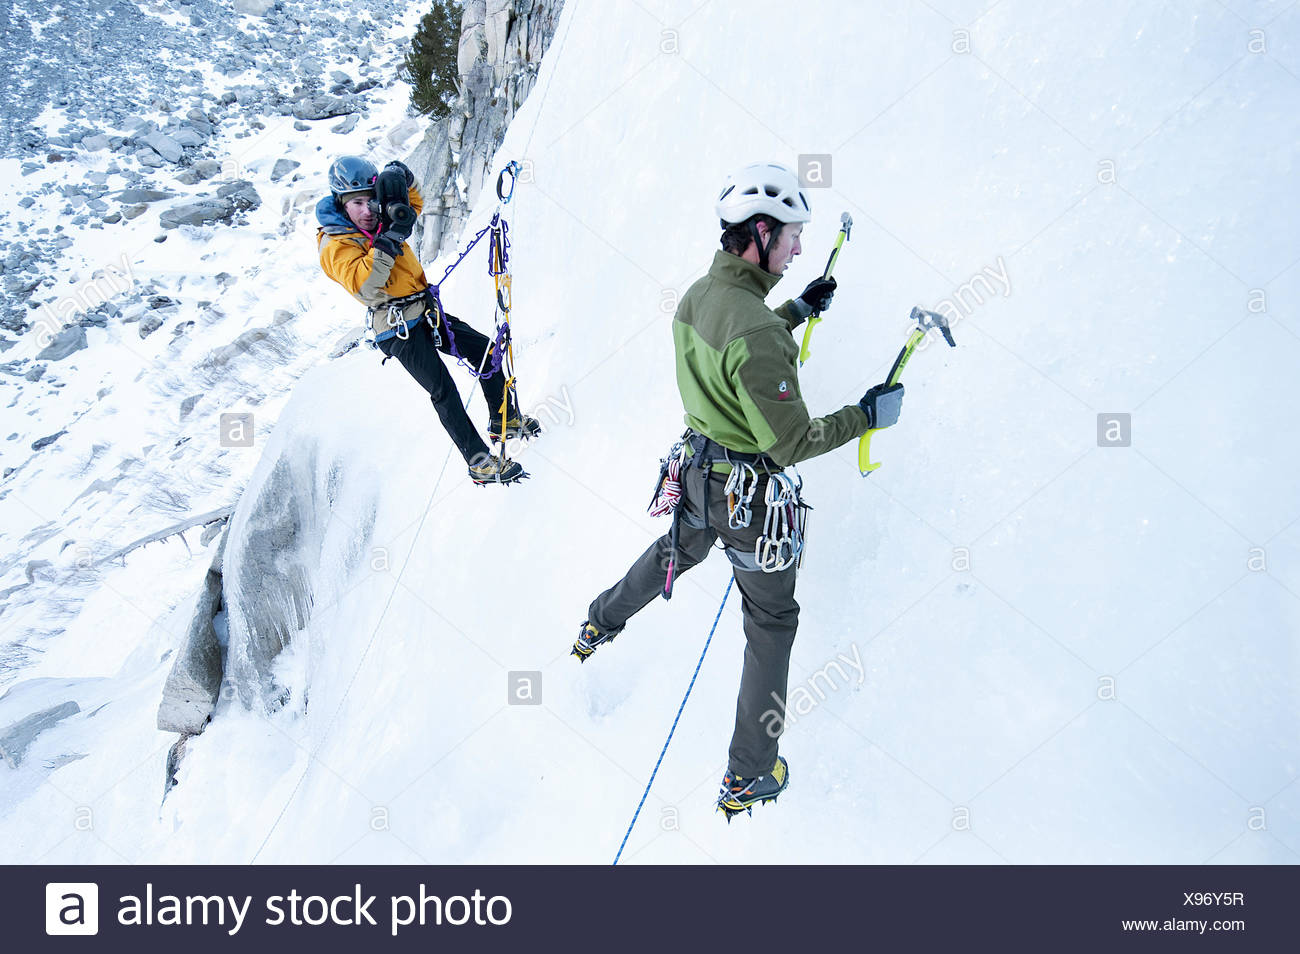 A photographer photographs an ice climber in Calif. Stock Photo